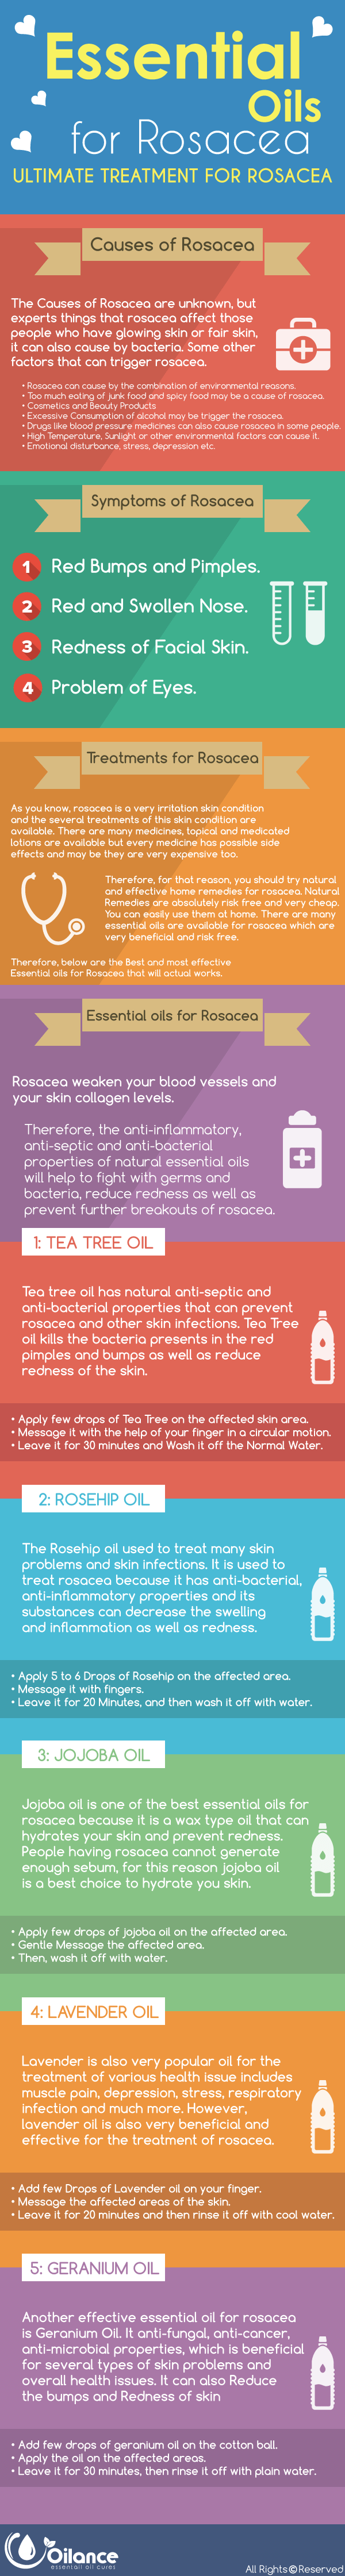 Best Essential Oils For Treating Rosacea Infographic